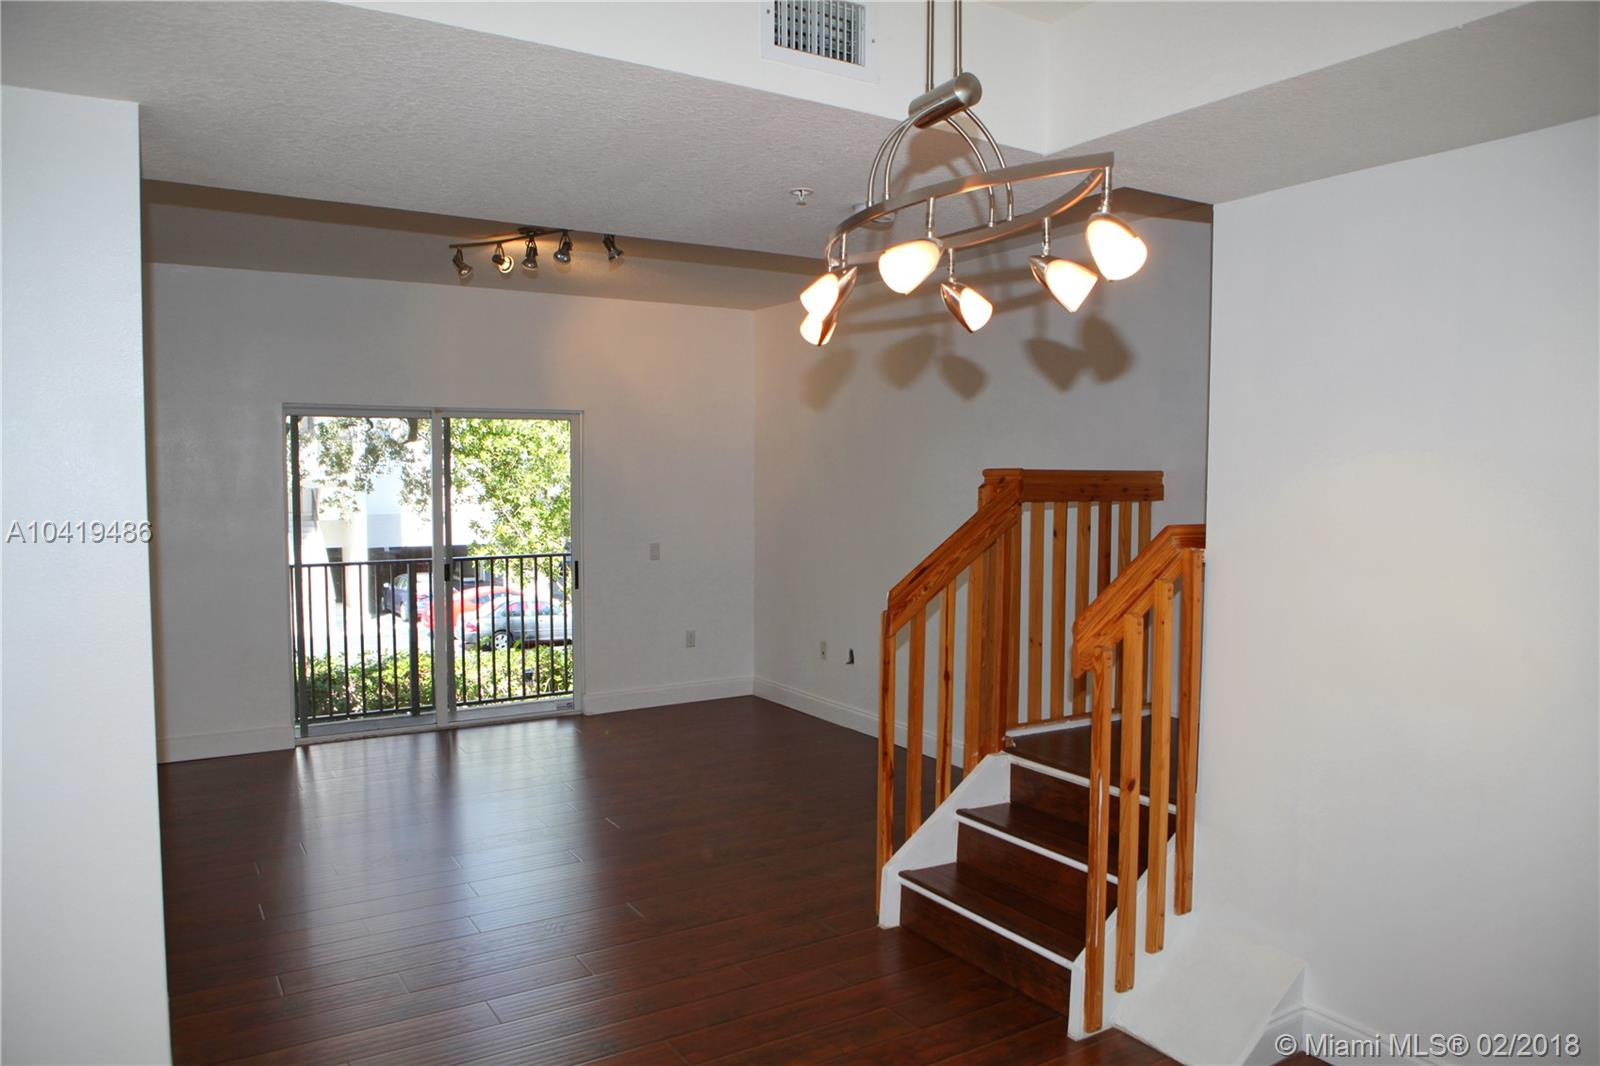 Townhouse for Rent in Miami